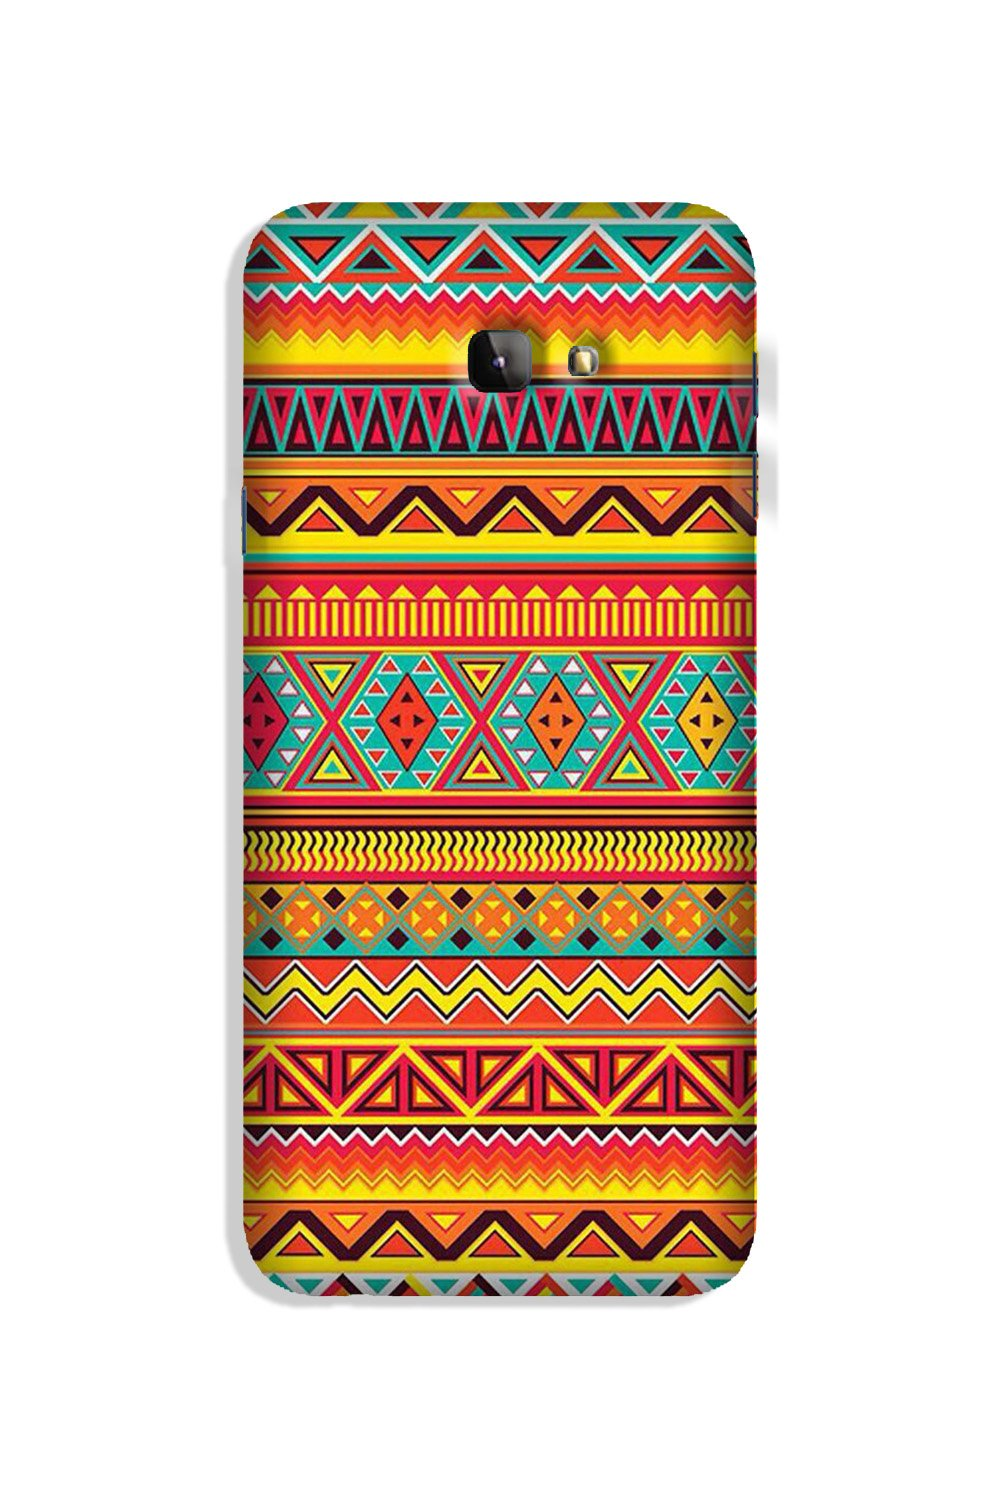 Zigzag line pattern Case for Galaxy J4 Plus